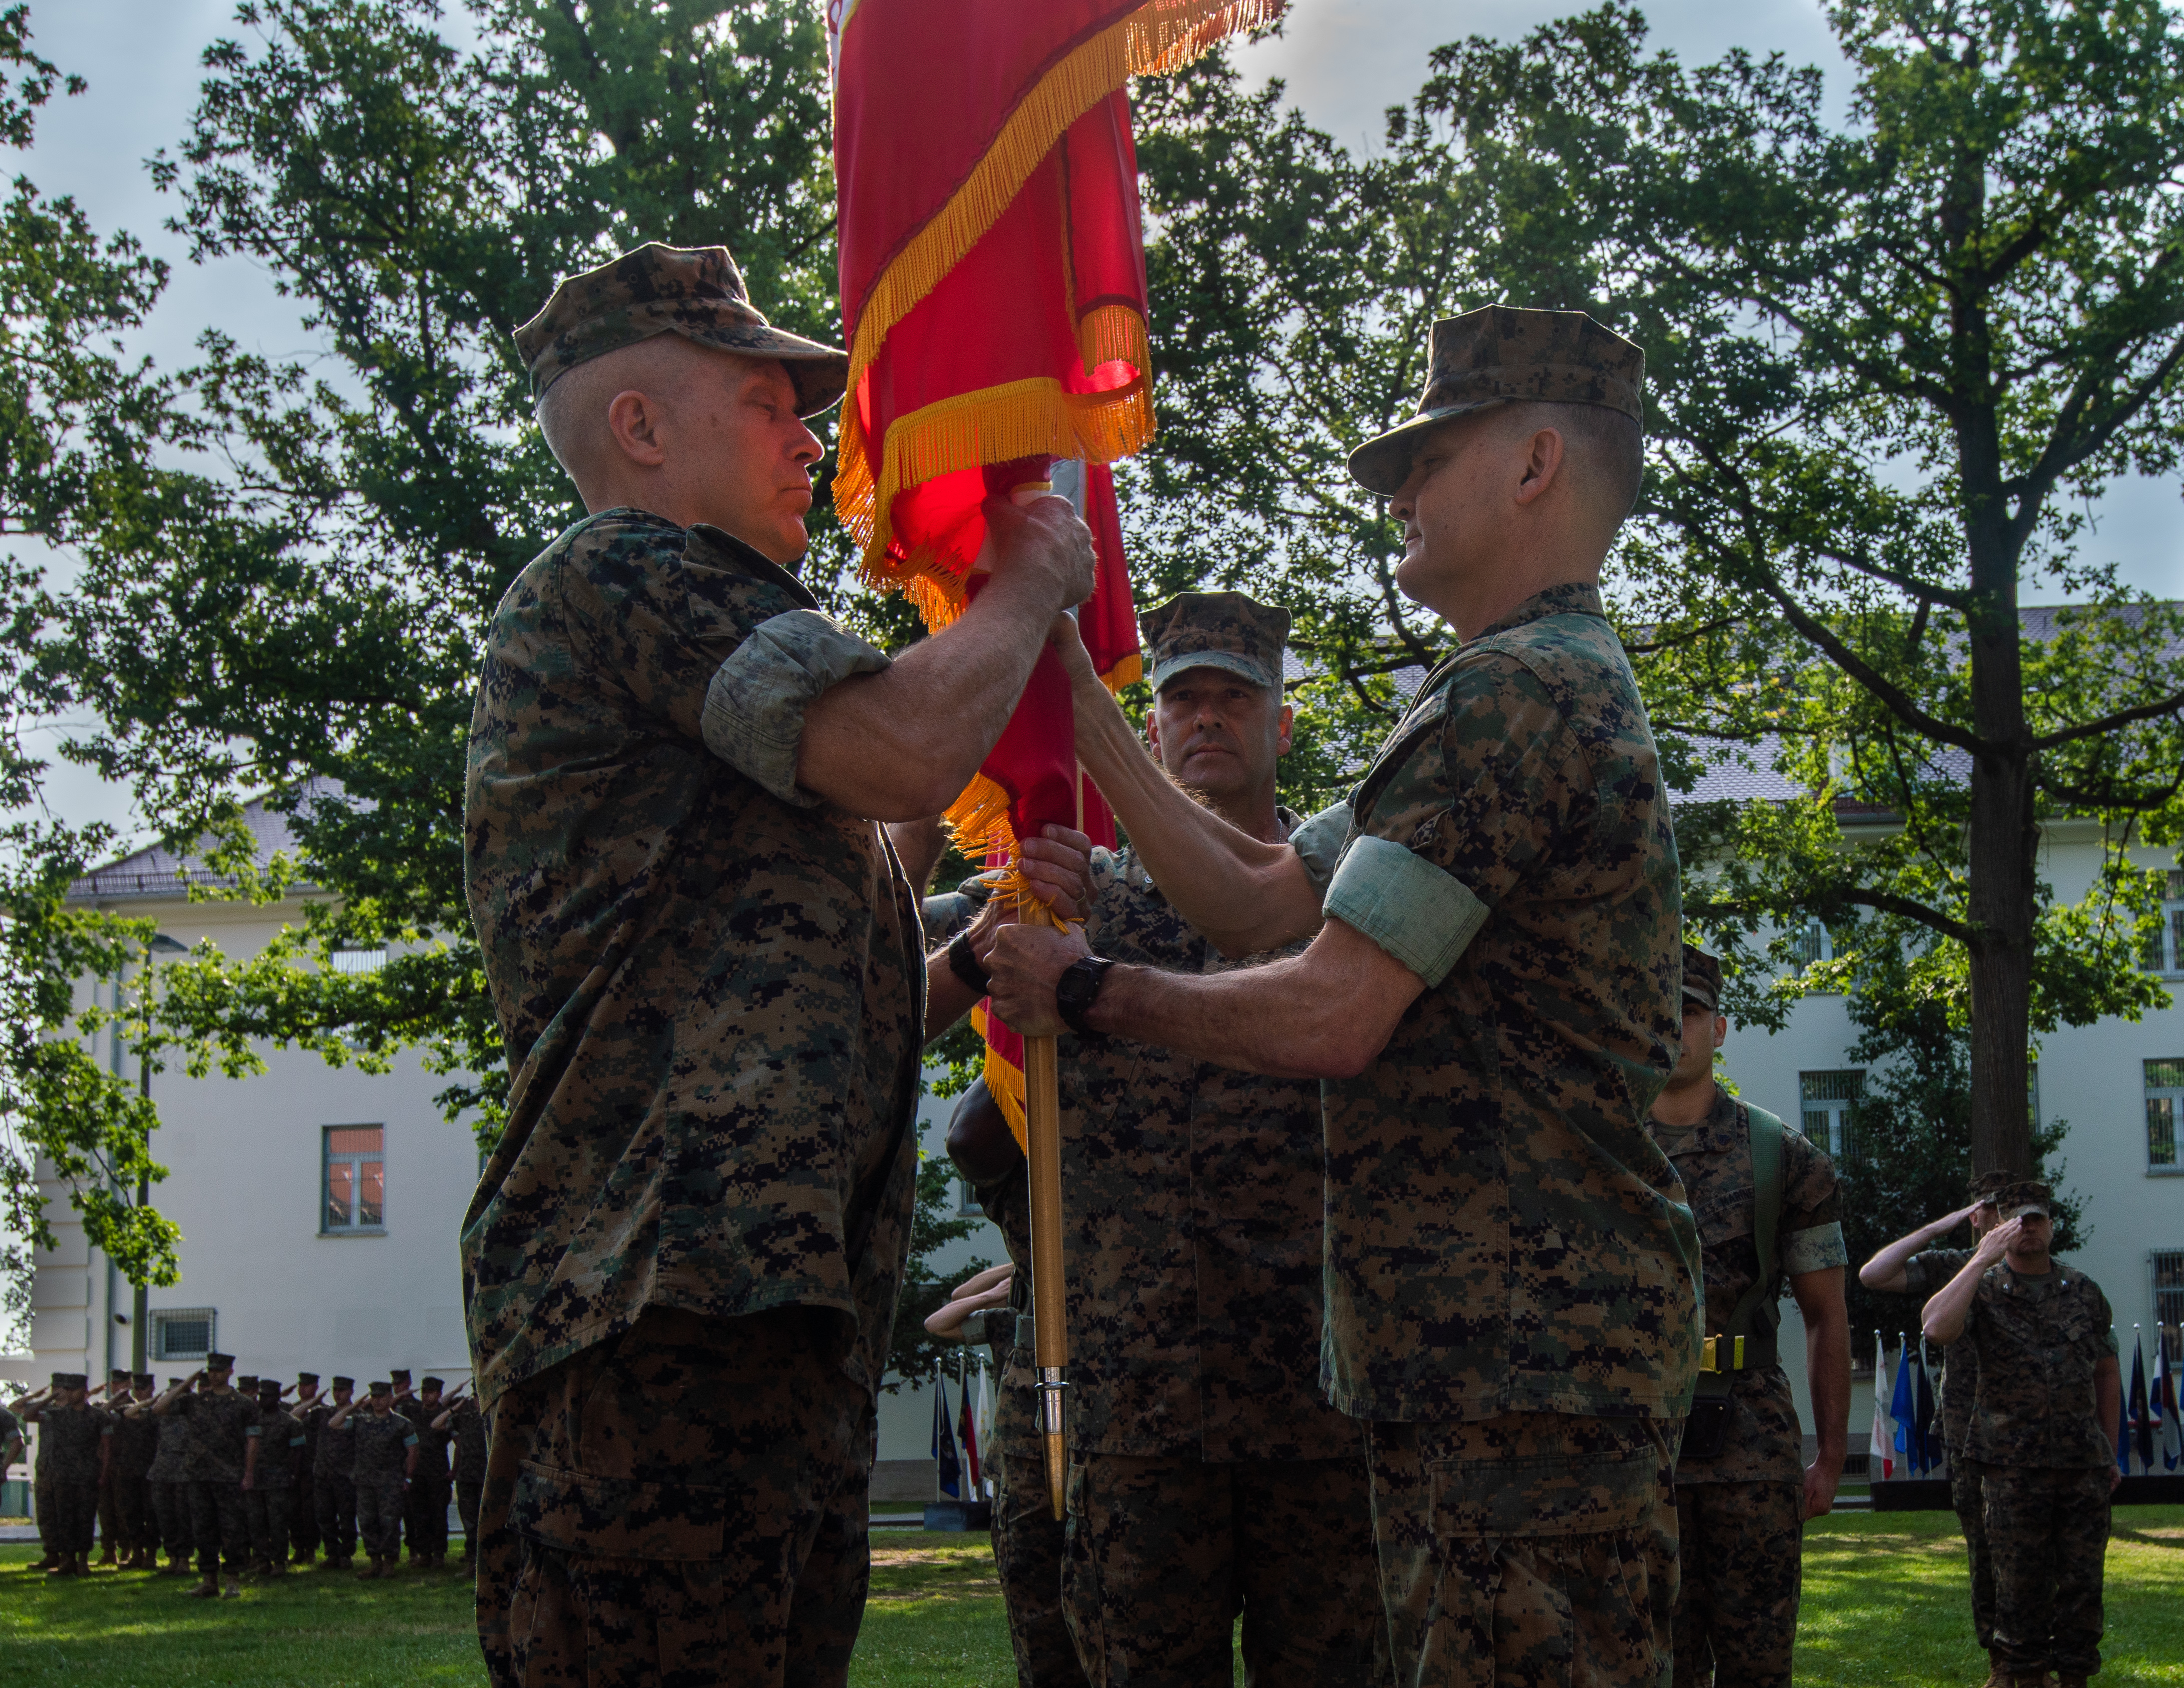 Major General Patrick J. Hermesmann , the incoming commander of Marine Forces Europe and Africa, receives the organizational colors from Maj. Gen. Russell A.C. Sanborn, the outgoing commander, during the change of command ceremony on the Devil Dog Field on Panzer Kaserne in Boeblingen, Germany, July 9, 2019. Sanborn, who commanded MARFOREUR/AF since July 2017, presided over several initiatives that grew the headquarters as a dynamic warfighting institution, to include increasing NATO capacity for allied amphibious operations; enhanced naval and amphibious integration into plans, operations and exercises; the expansion of the Marine Corps cold-weather and mountain-warfare rotational training presence in Norway's high north; and responsibility for US forces participating in Exercise Trident Juncture 2018, the largest NATO military exercise since the end of the Cold War. (U.S. Marine Corps photo by Lance Cpl. Menelik Collins/Released)